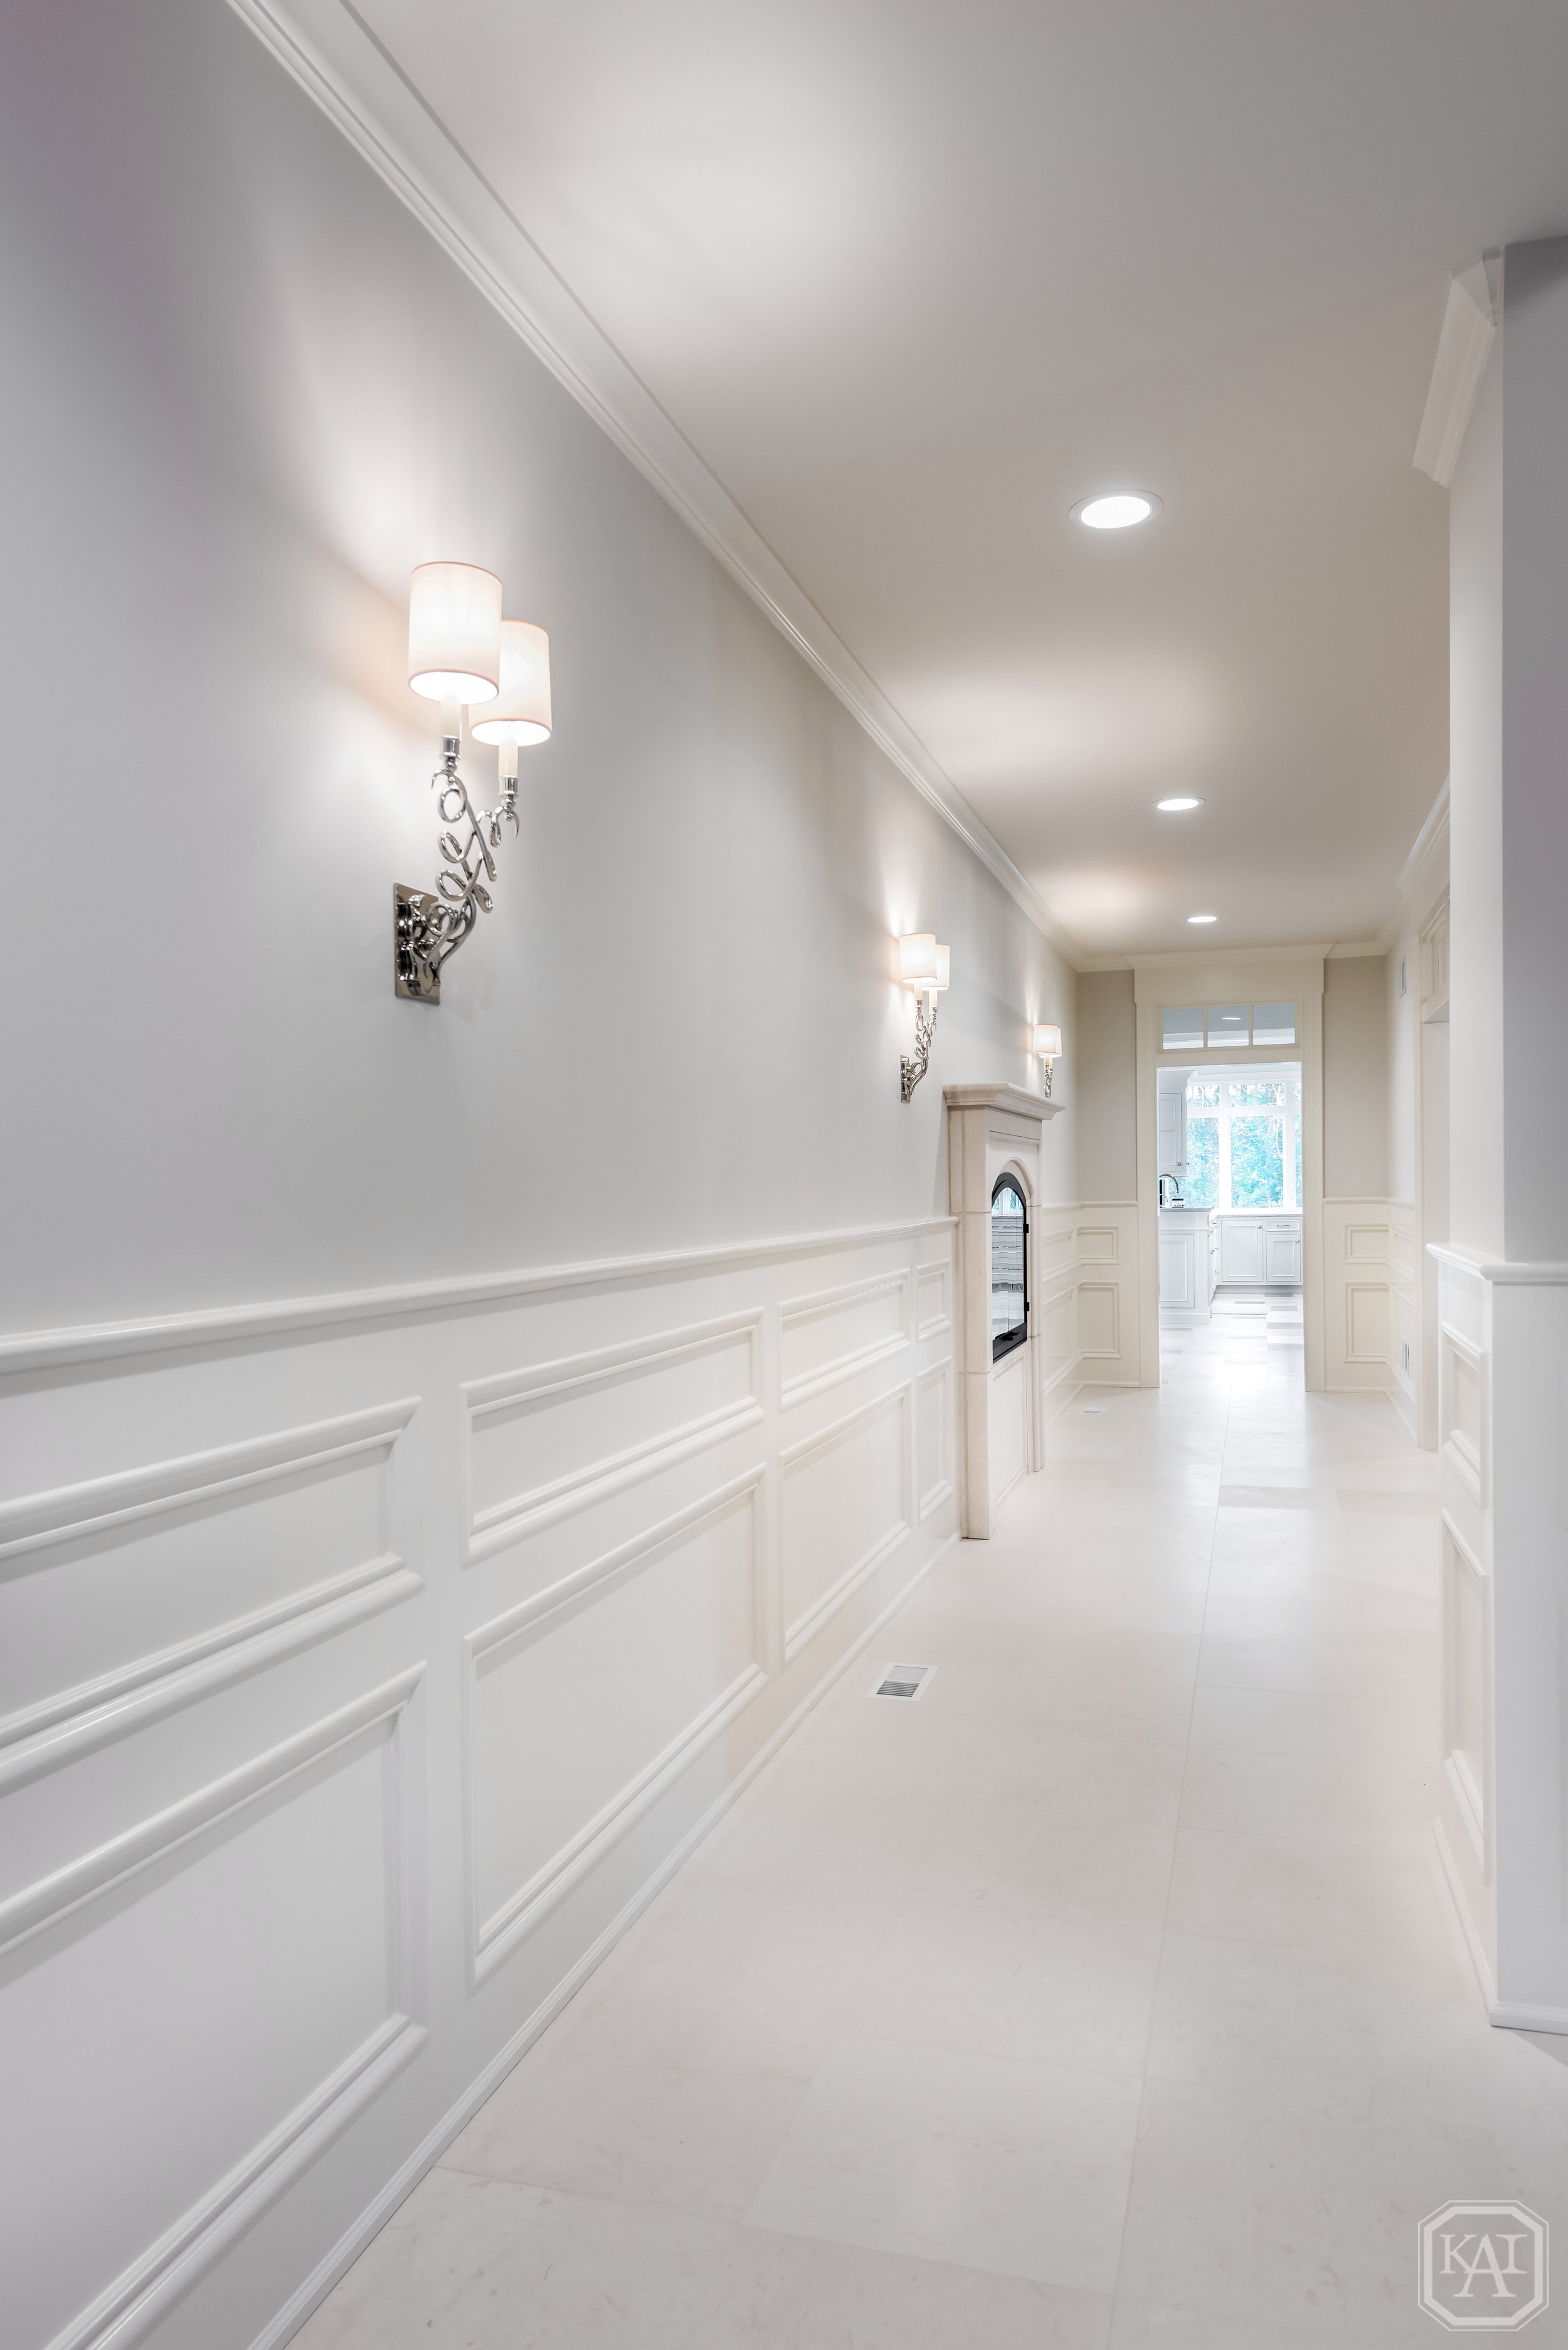 ZITELLA HALLWAY BY FOYER_1_KATH 25_FINAL EDIT MINUS DECOR.jpg